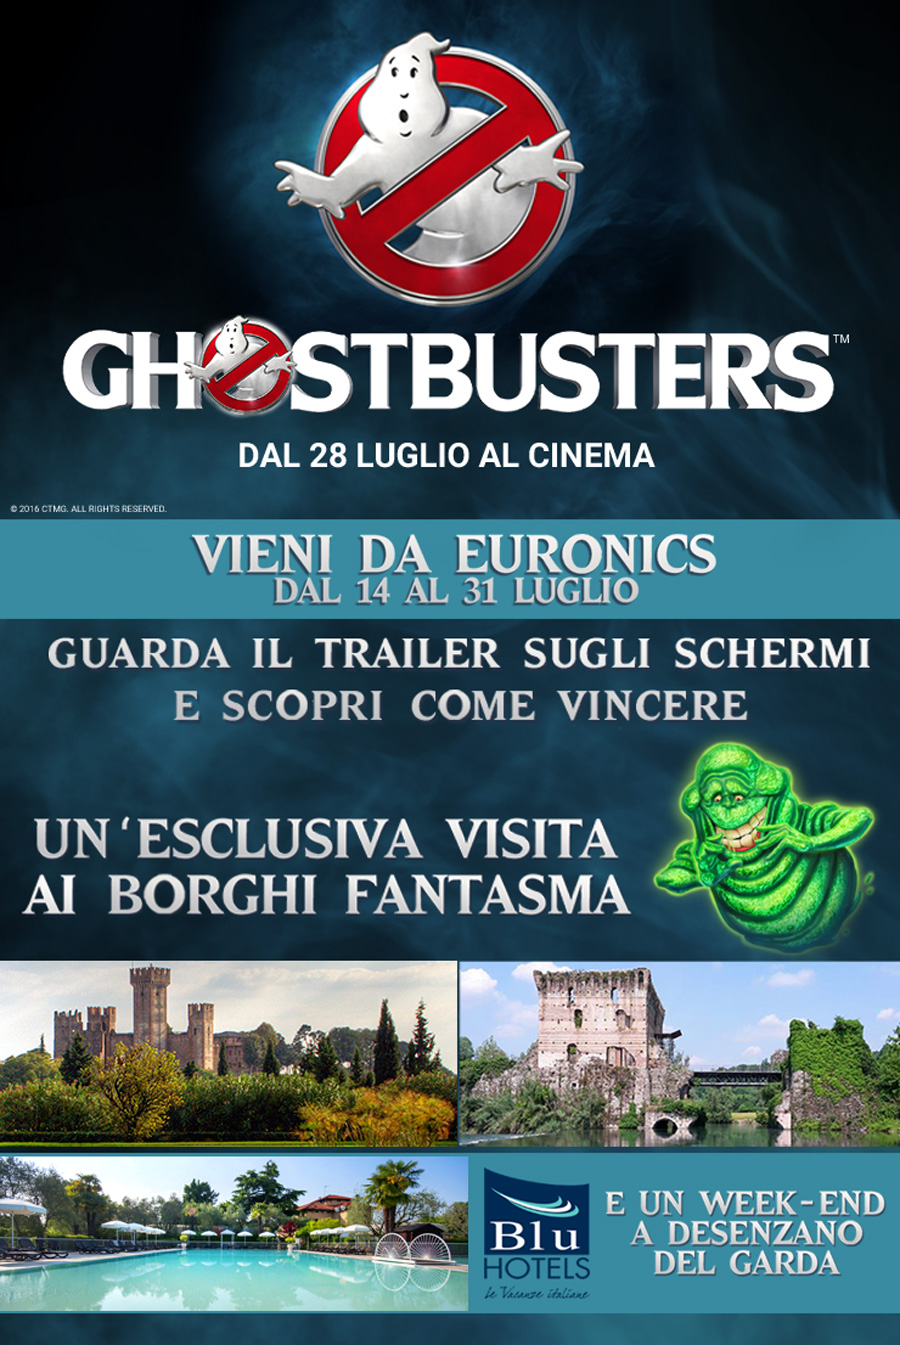 Ghostbusters_Euronics_-paginaWEB_DEF